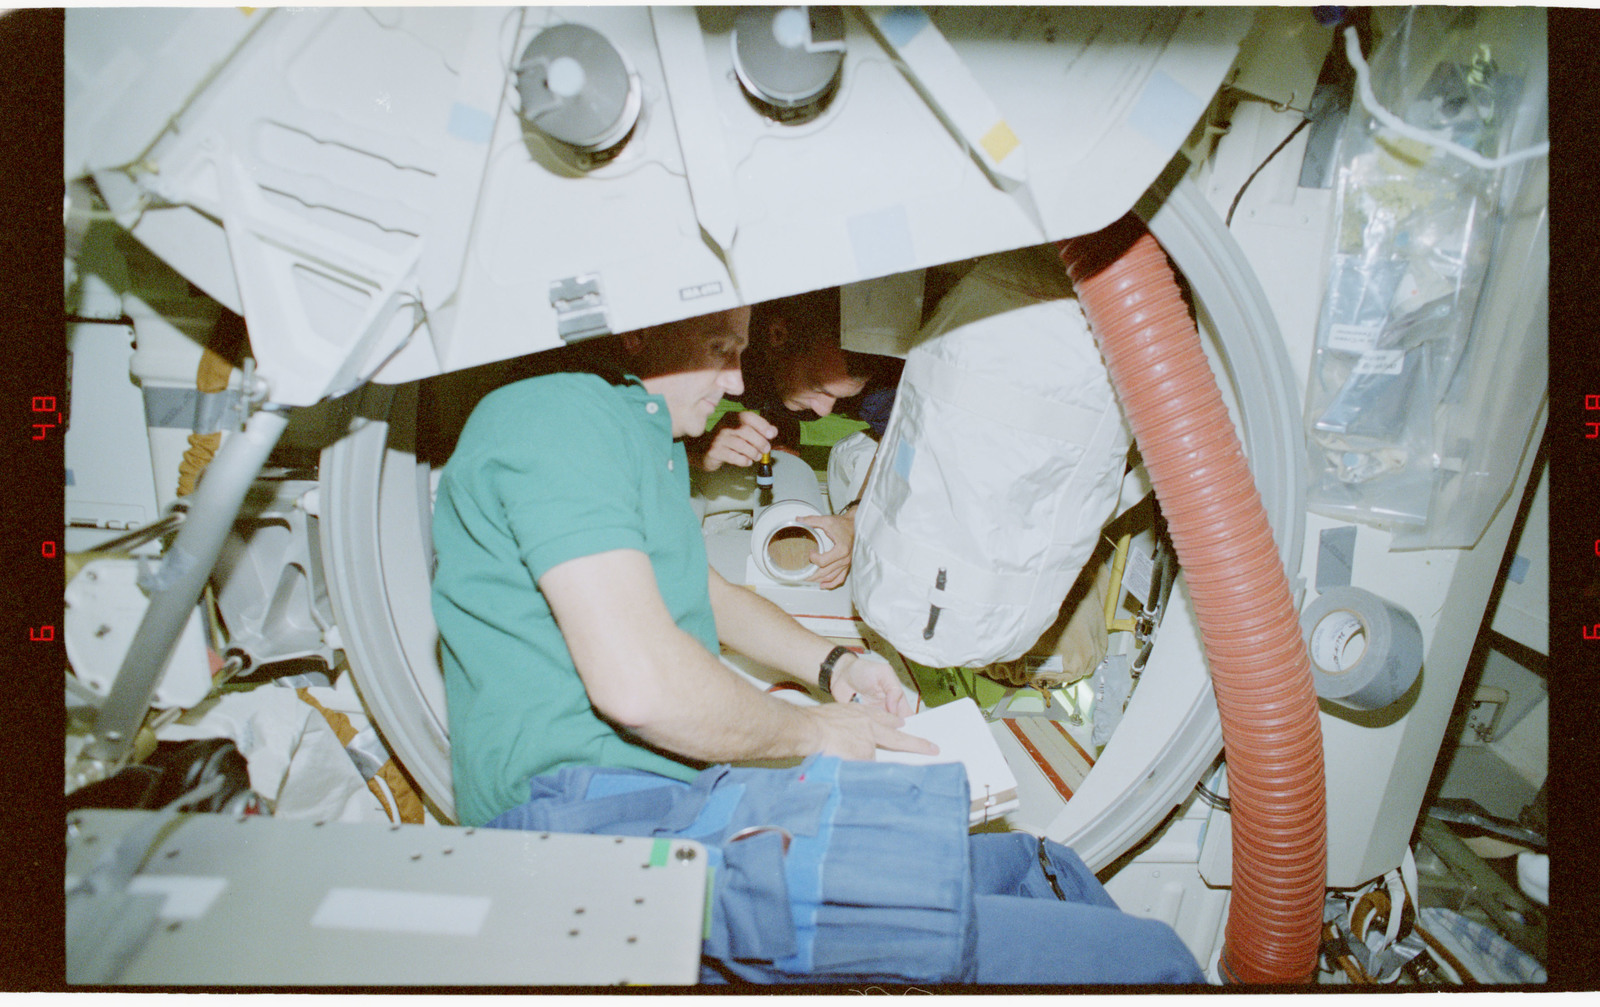 STS079-330-029 - STS-079 - STS-79 crew activities on the middeck